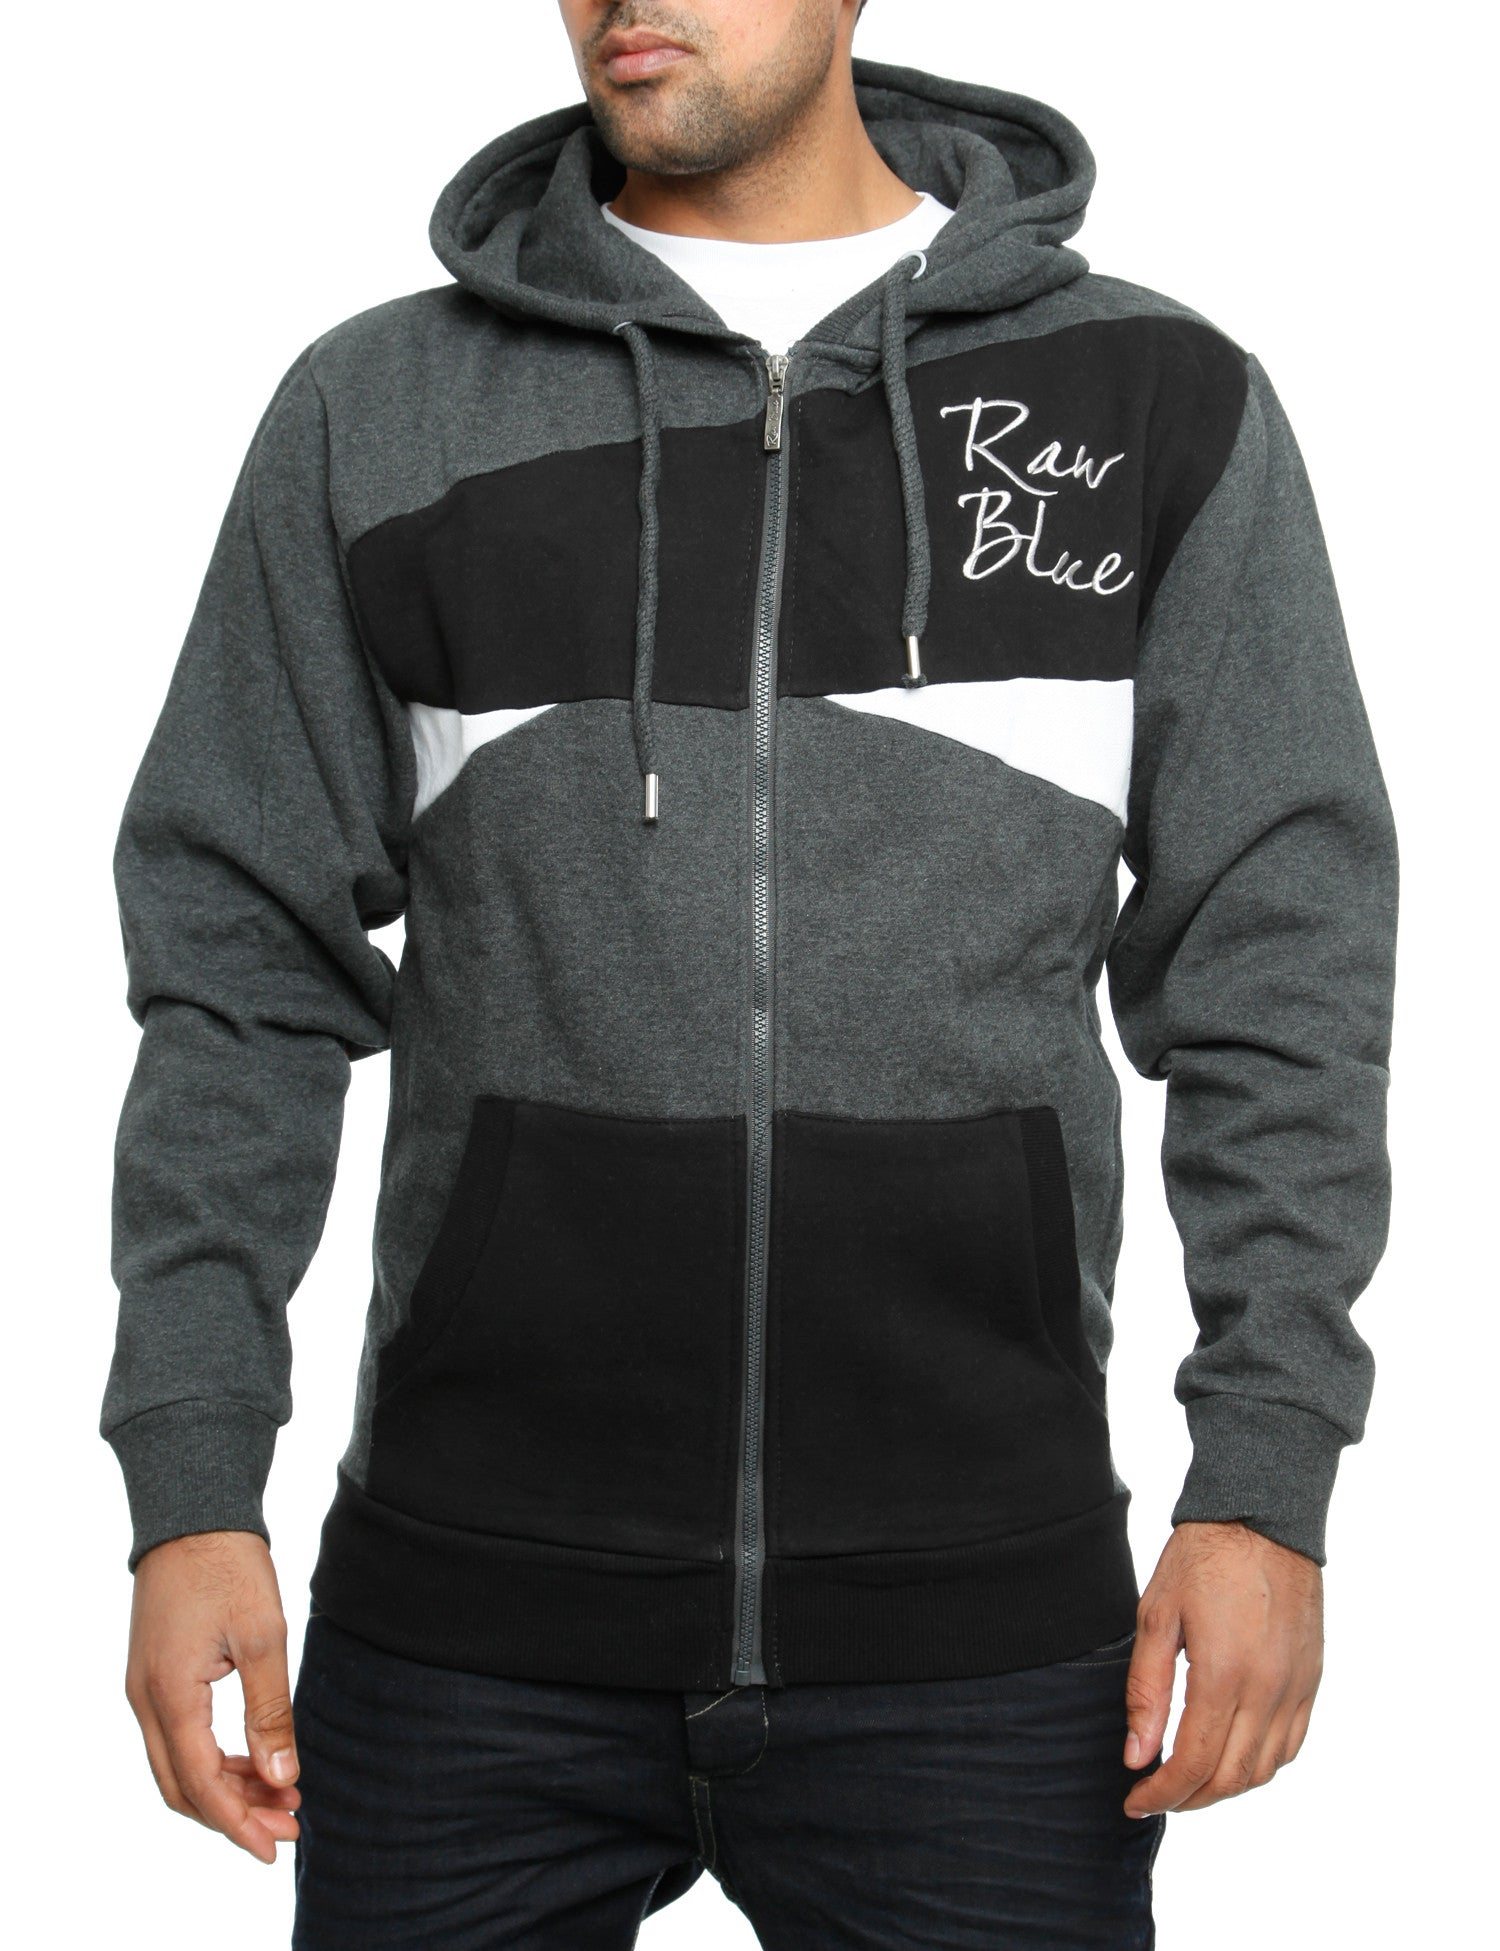 Raw Blue Zip Hoody RBCZ1003 Grey